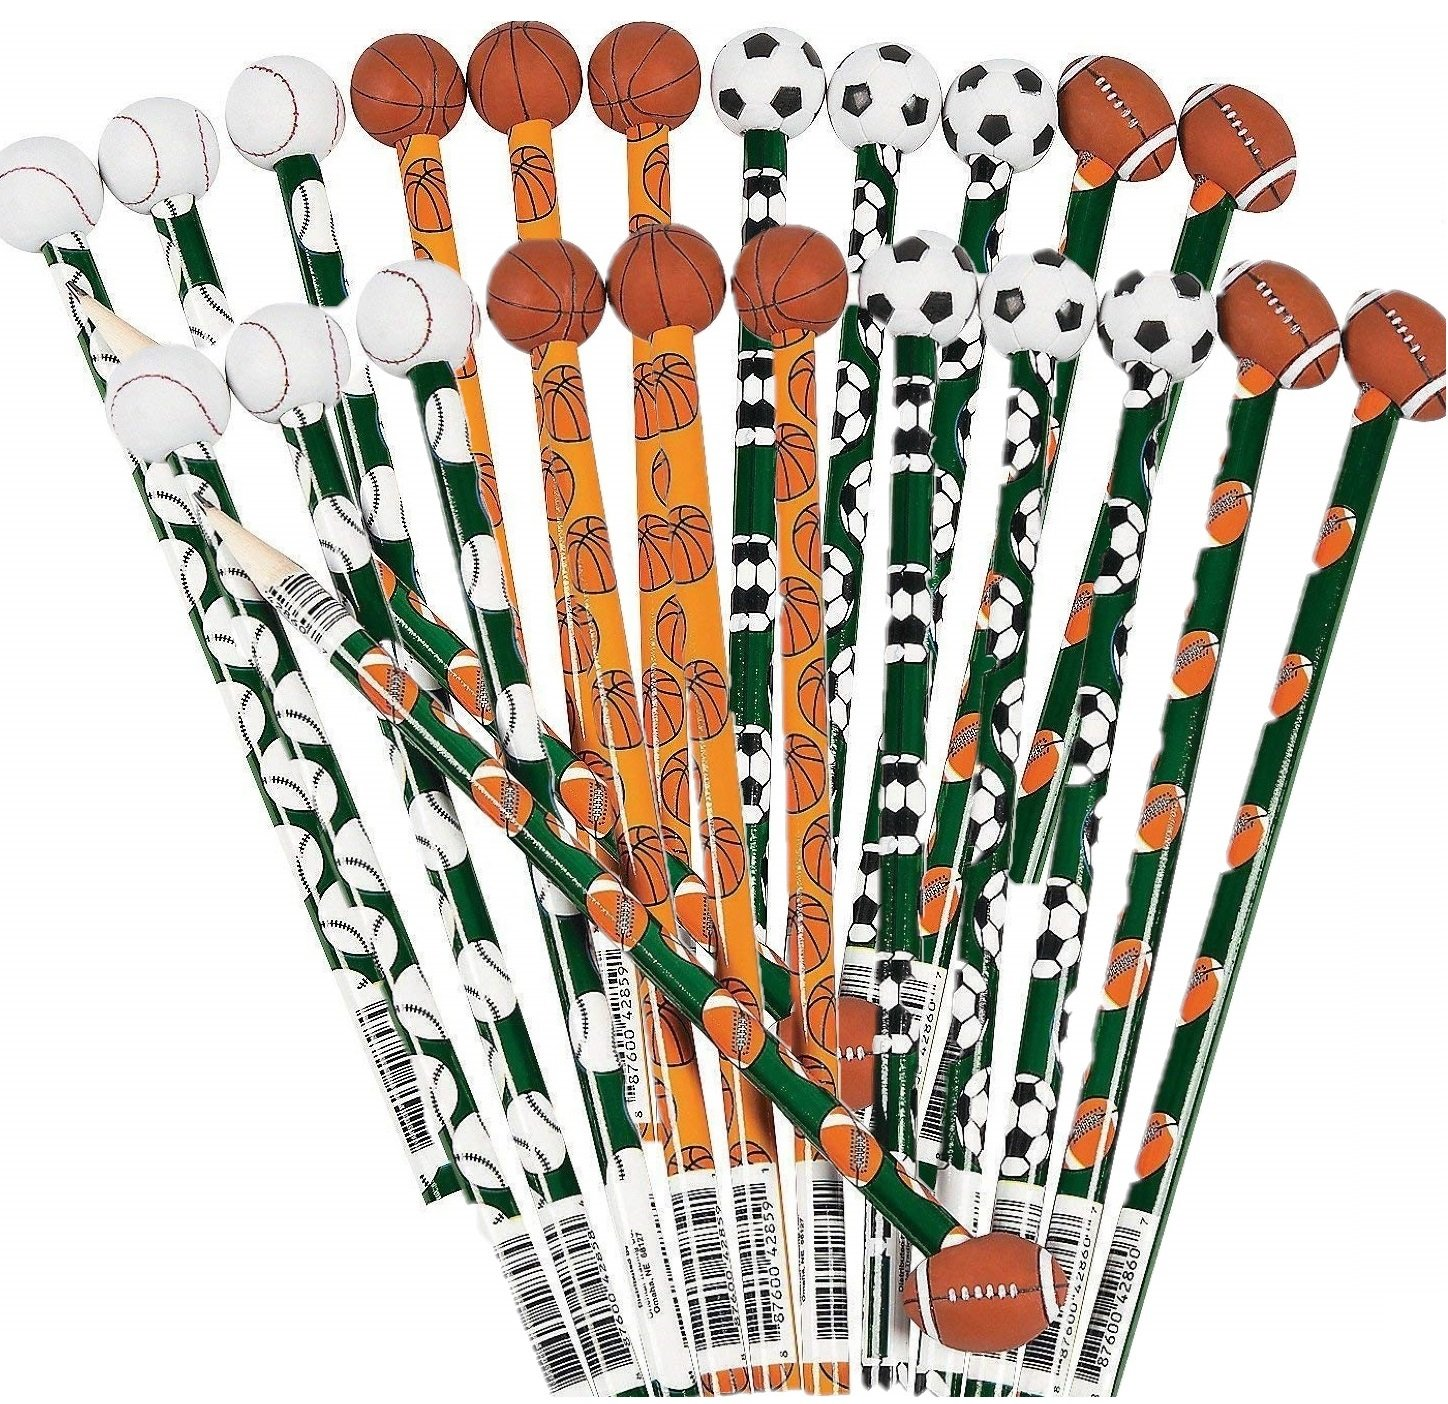 Fun Express Wooden Sports Pencils with Ball Eraser (24 Pack) by Fun Express